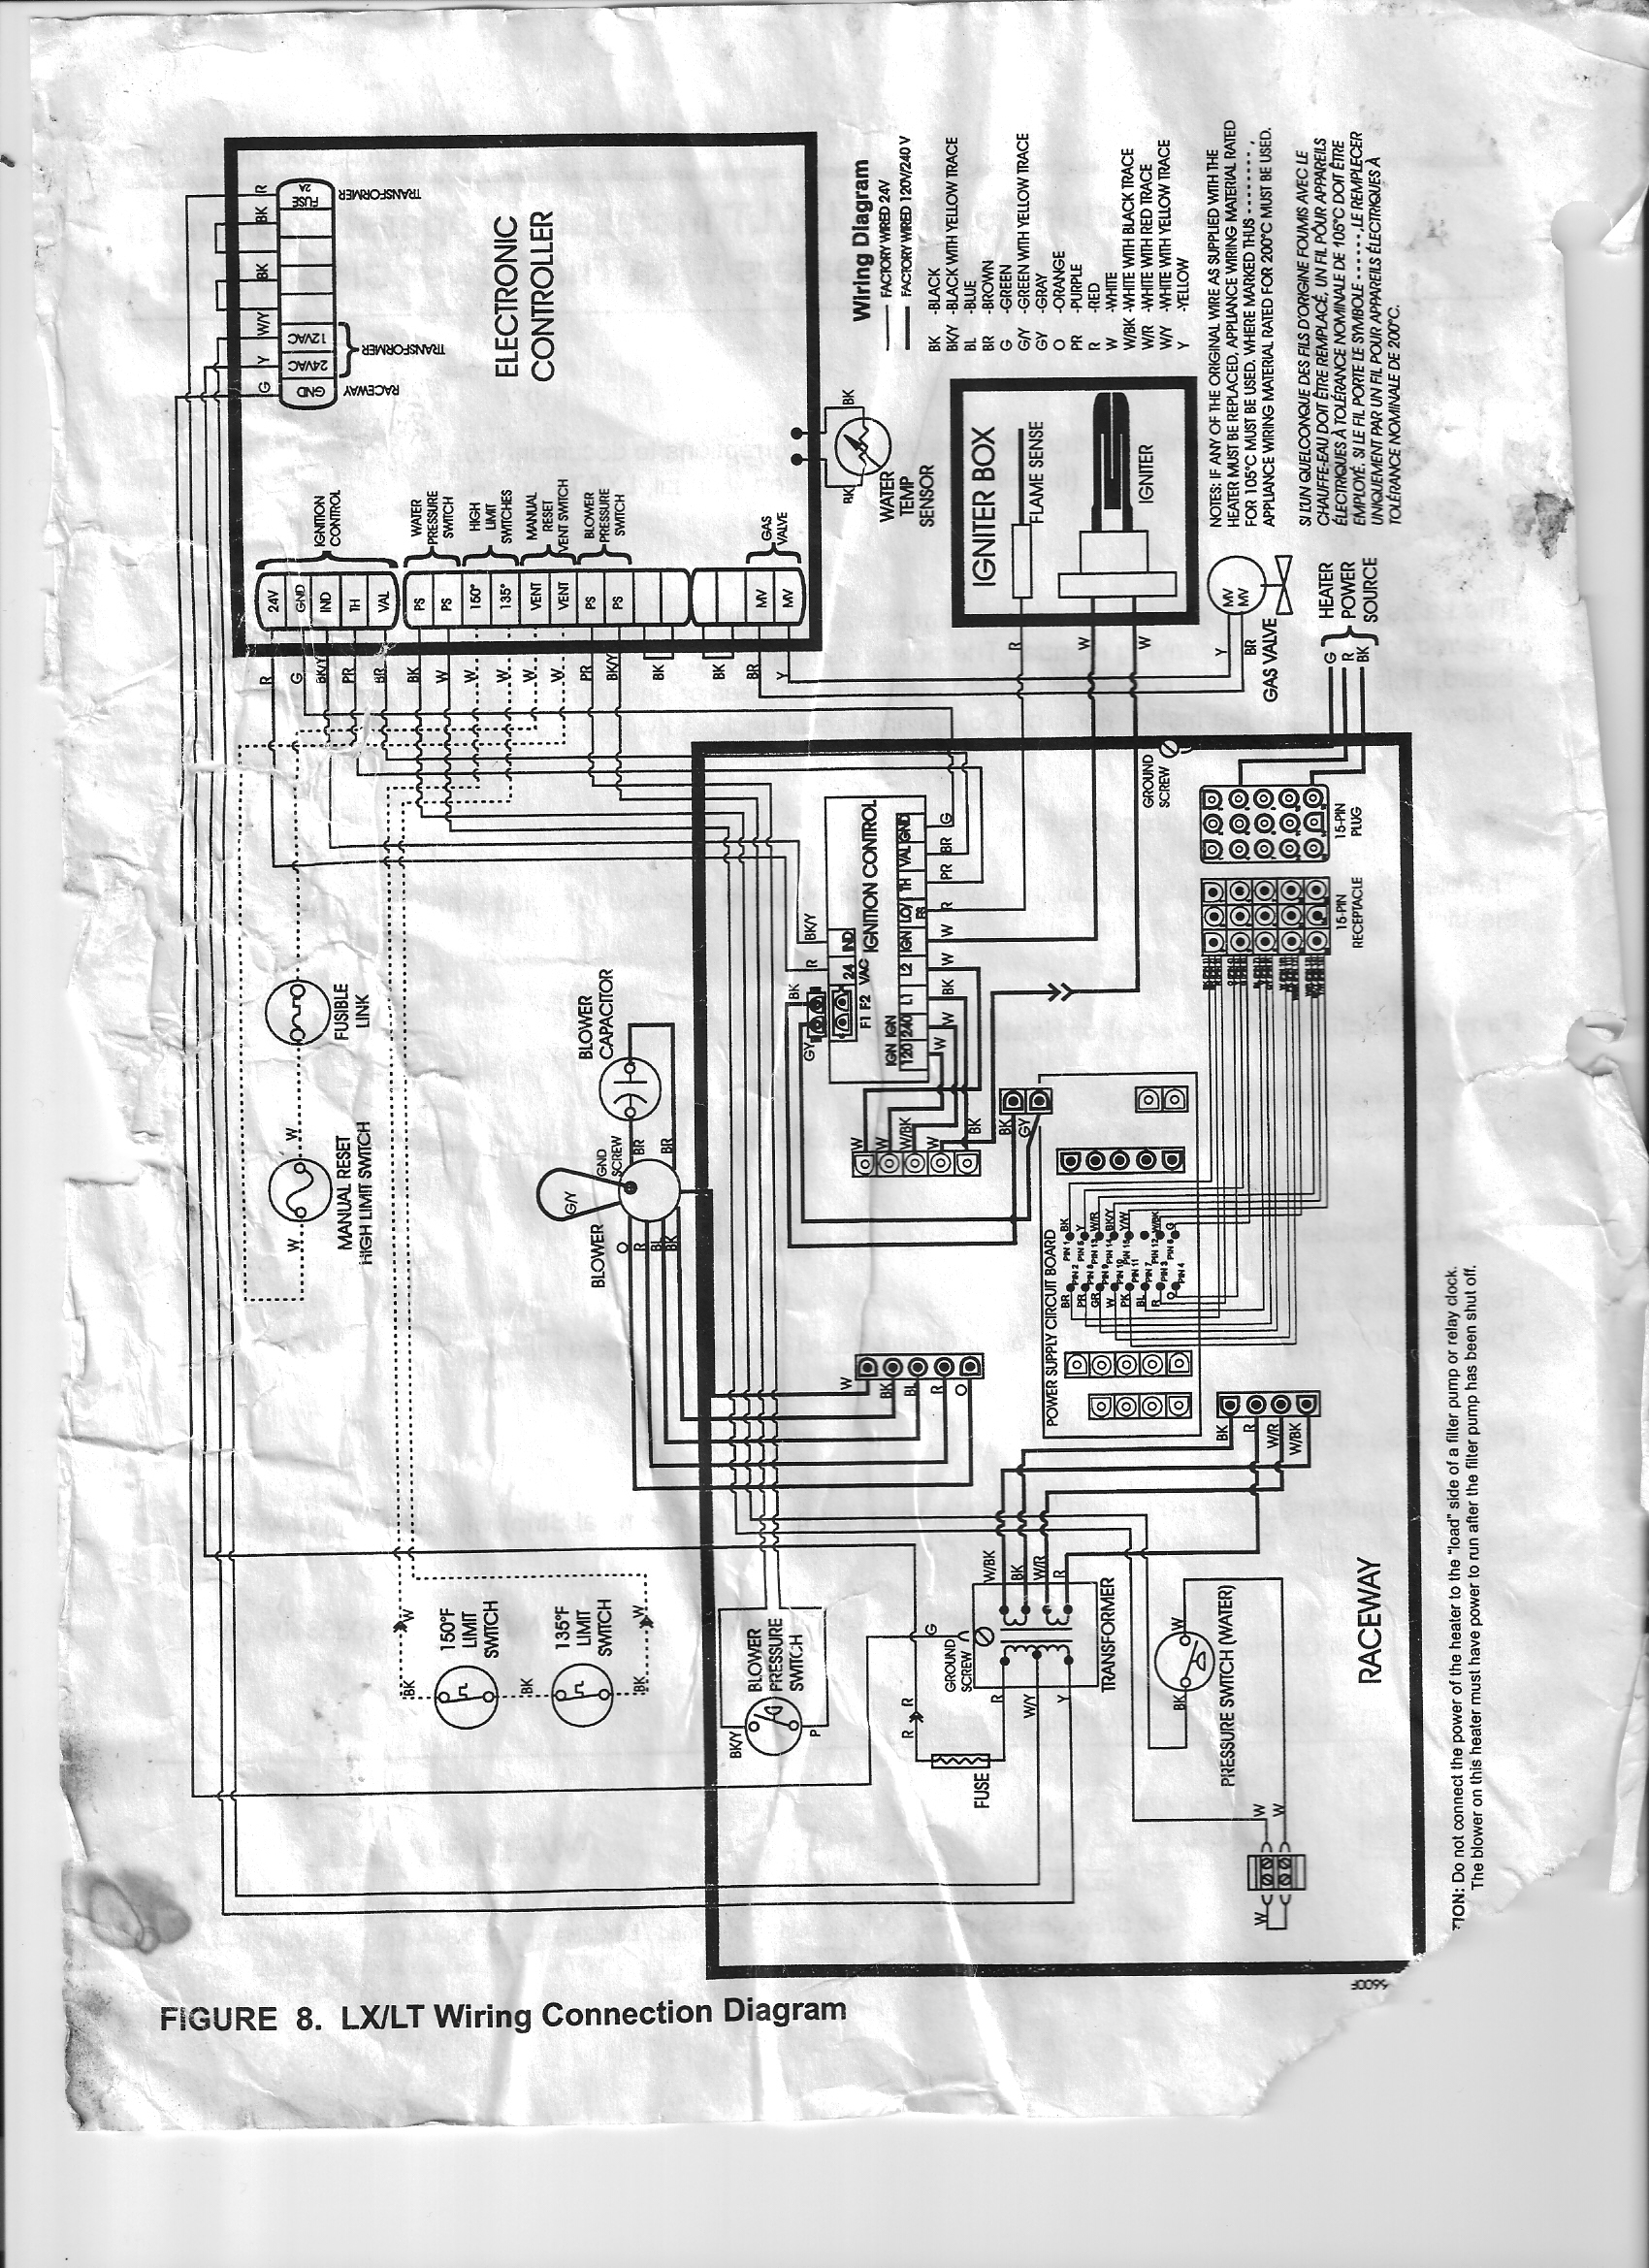 fenwal ignition module wiring diagram vw ignition control